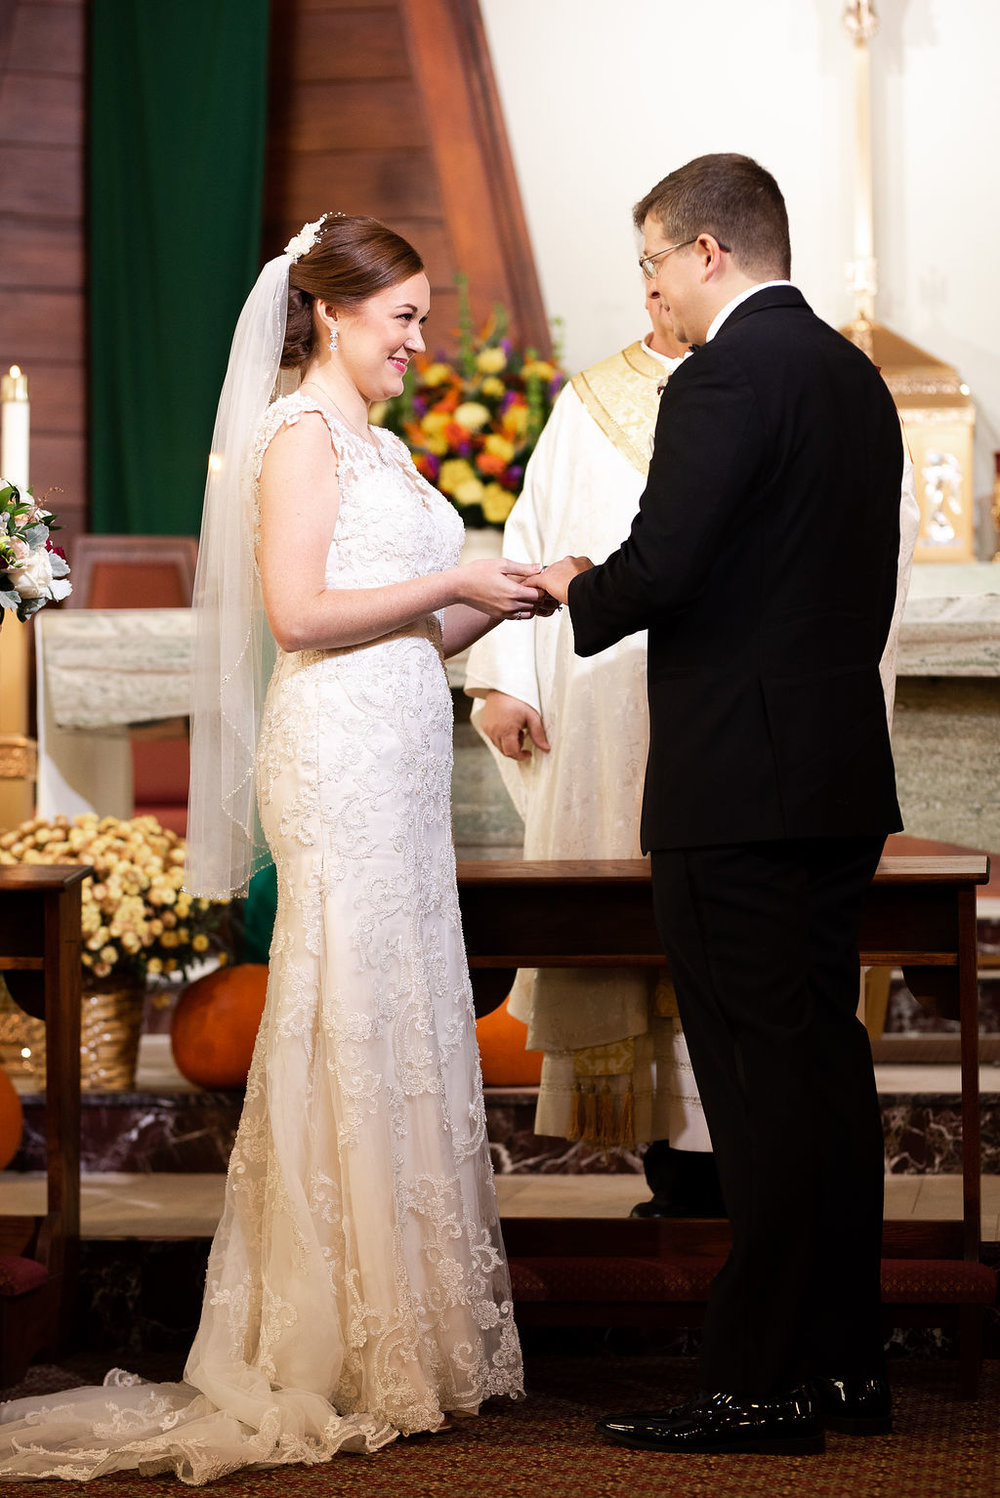 MeghanLucasWedding-Ceremony-125.jpg